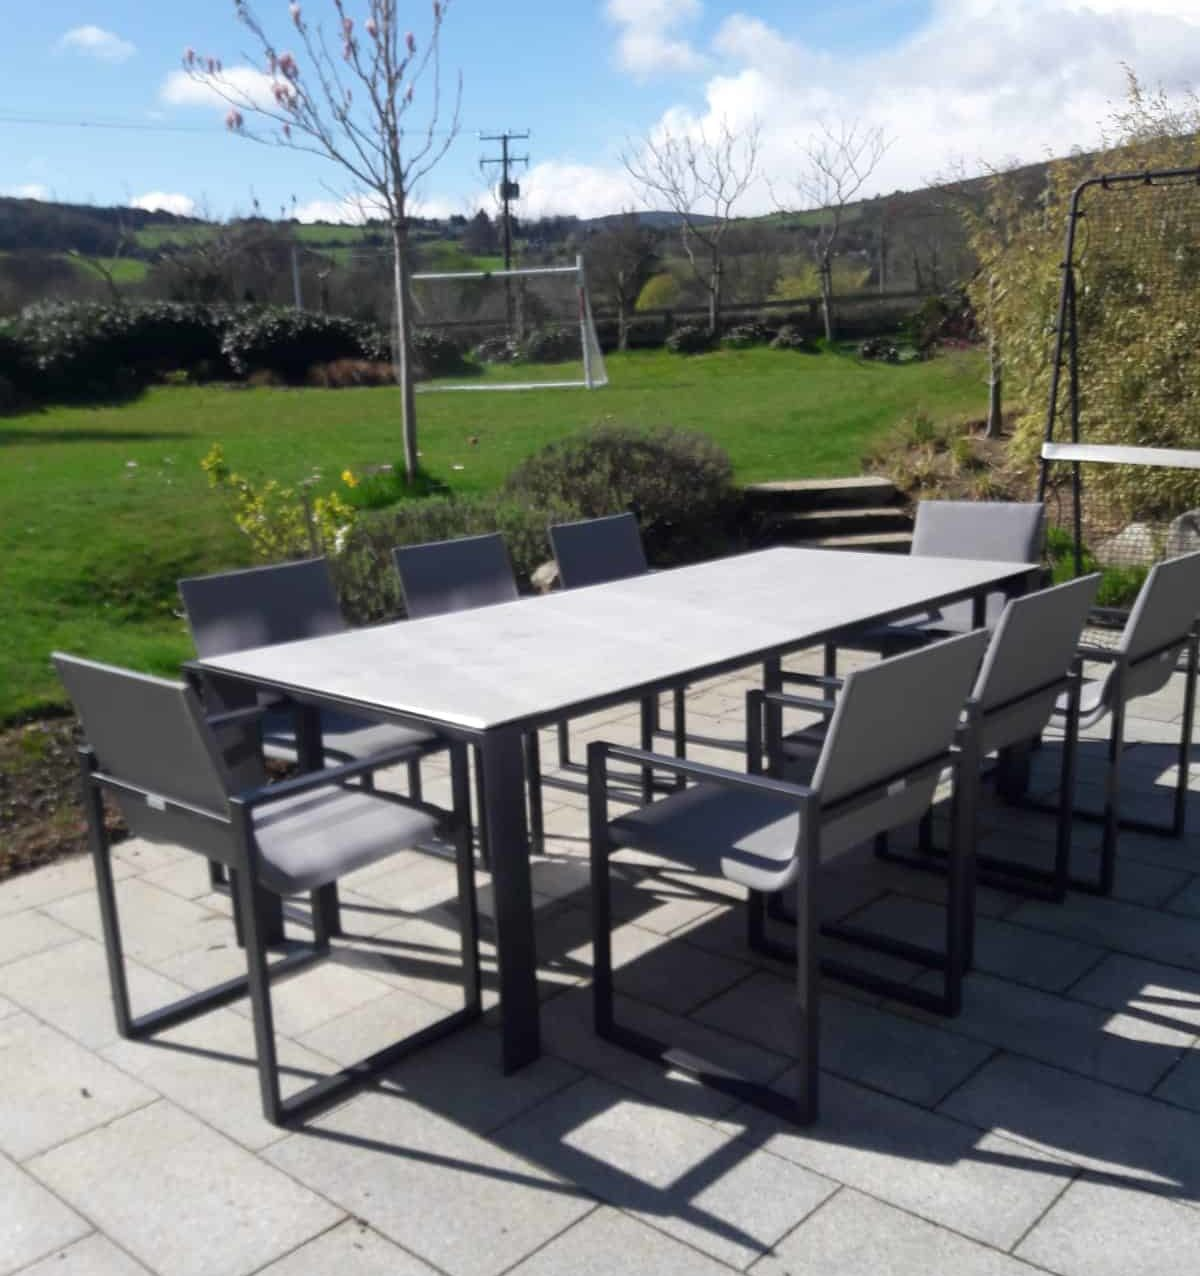 Fermo Dining Table set with 9 Chairs - Charcoal